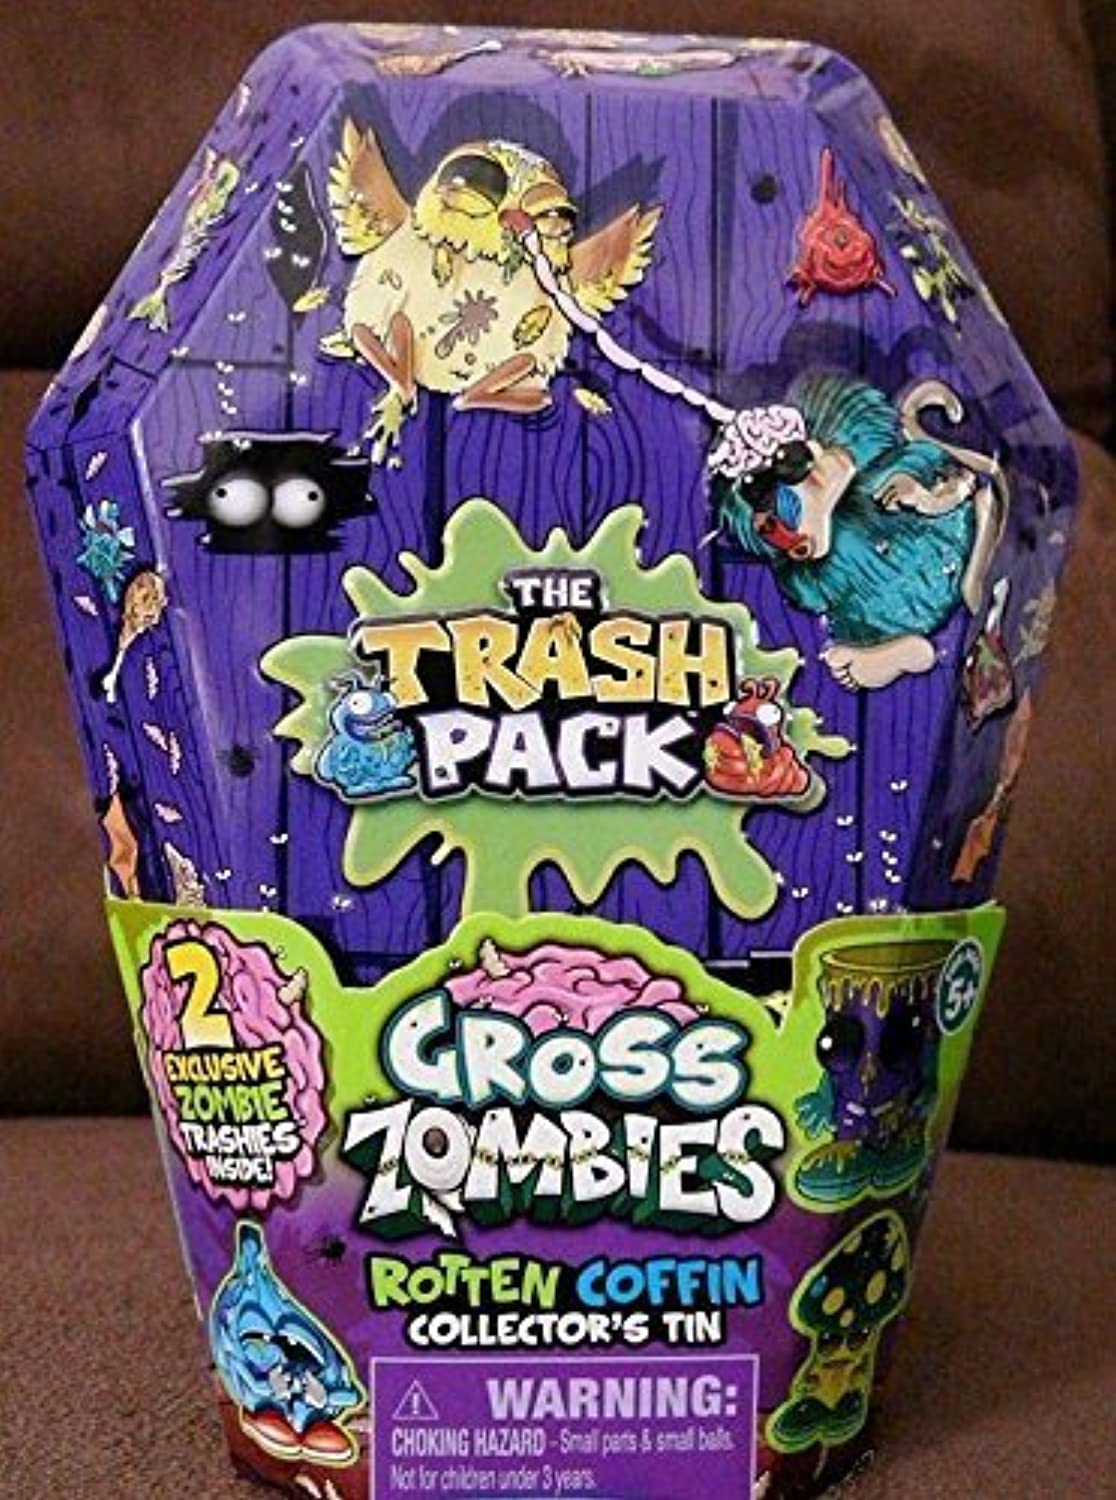 Trash Pack Gross Zombies Rotten Coffin Collector's Tin by Prannoi